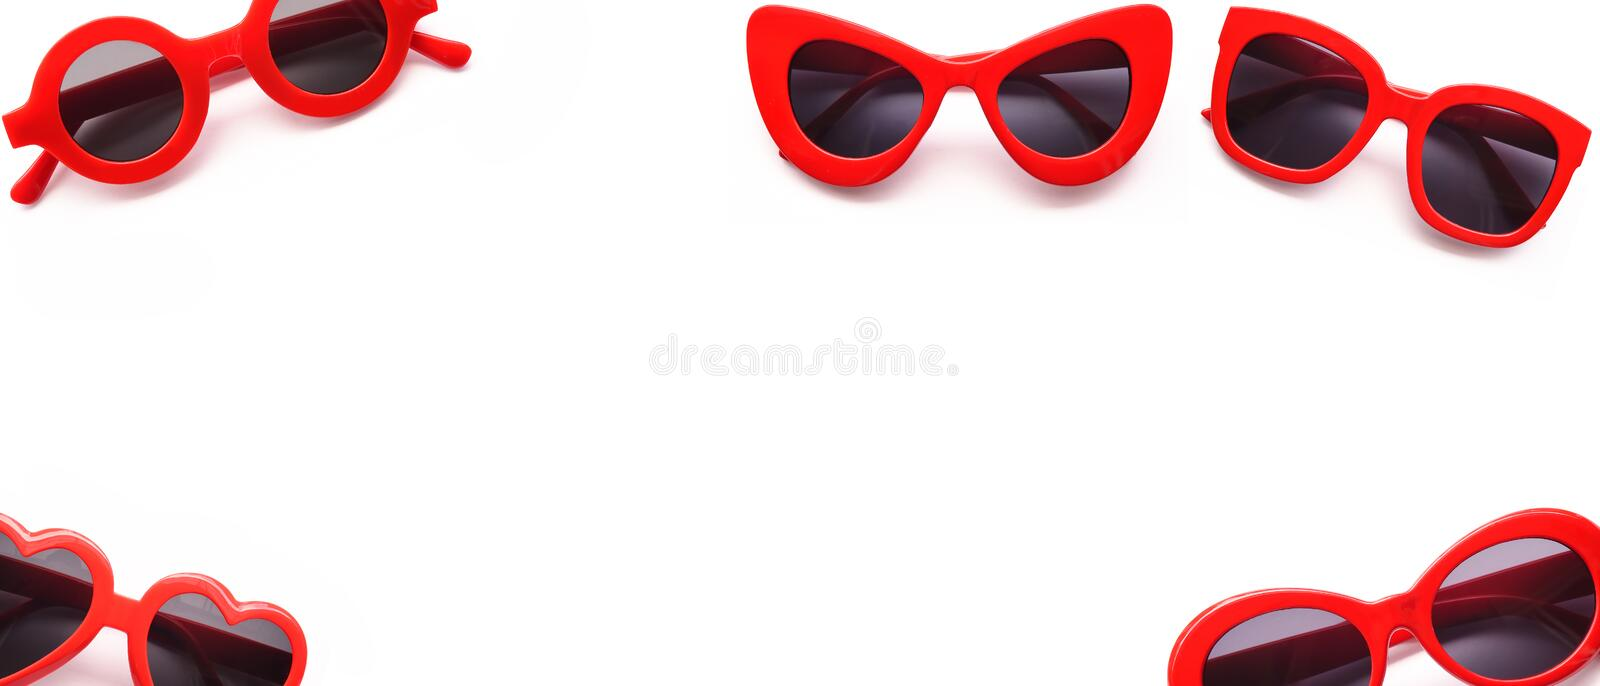 Modern fashionable sunglasses royalty free stock photo